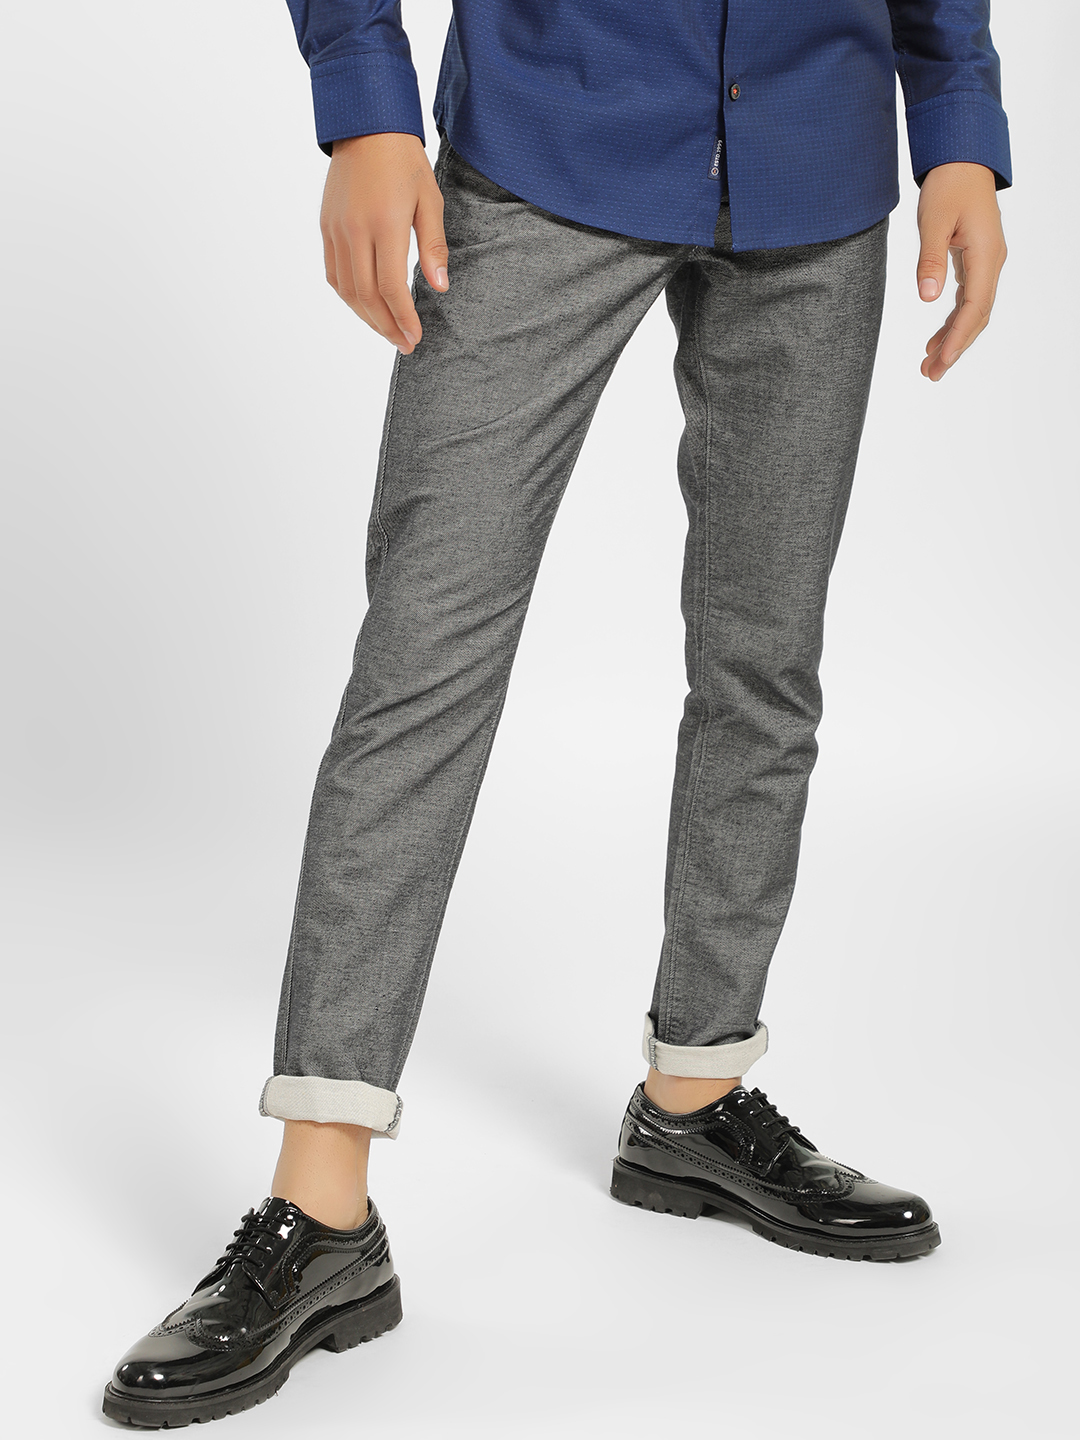 SCULLERS Black Textured Denim Slim Fit Trousers 1